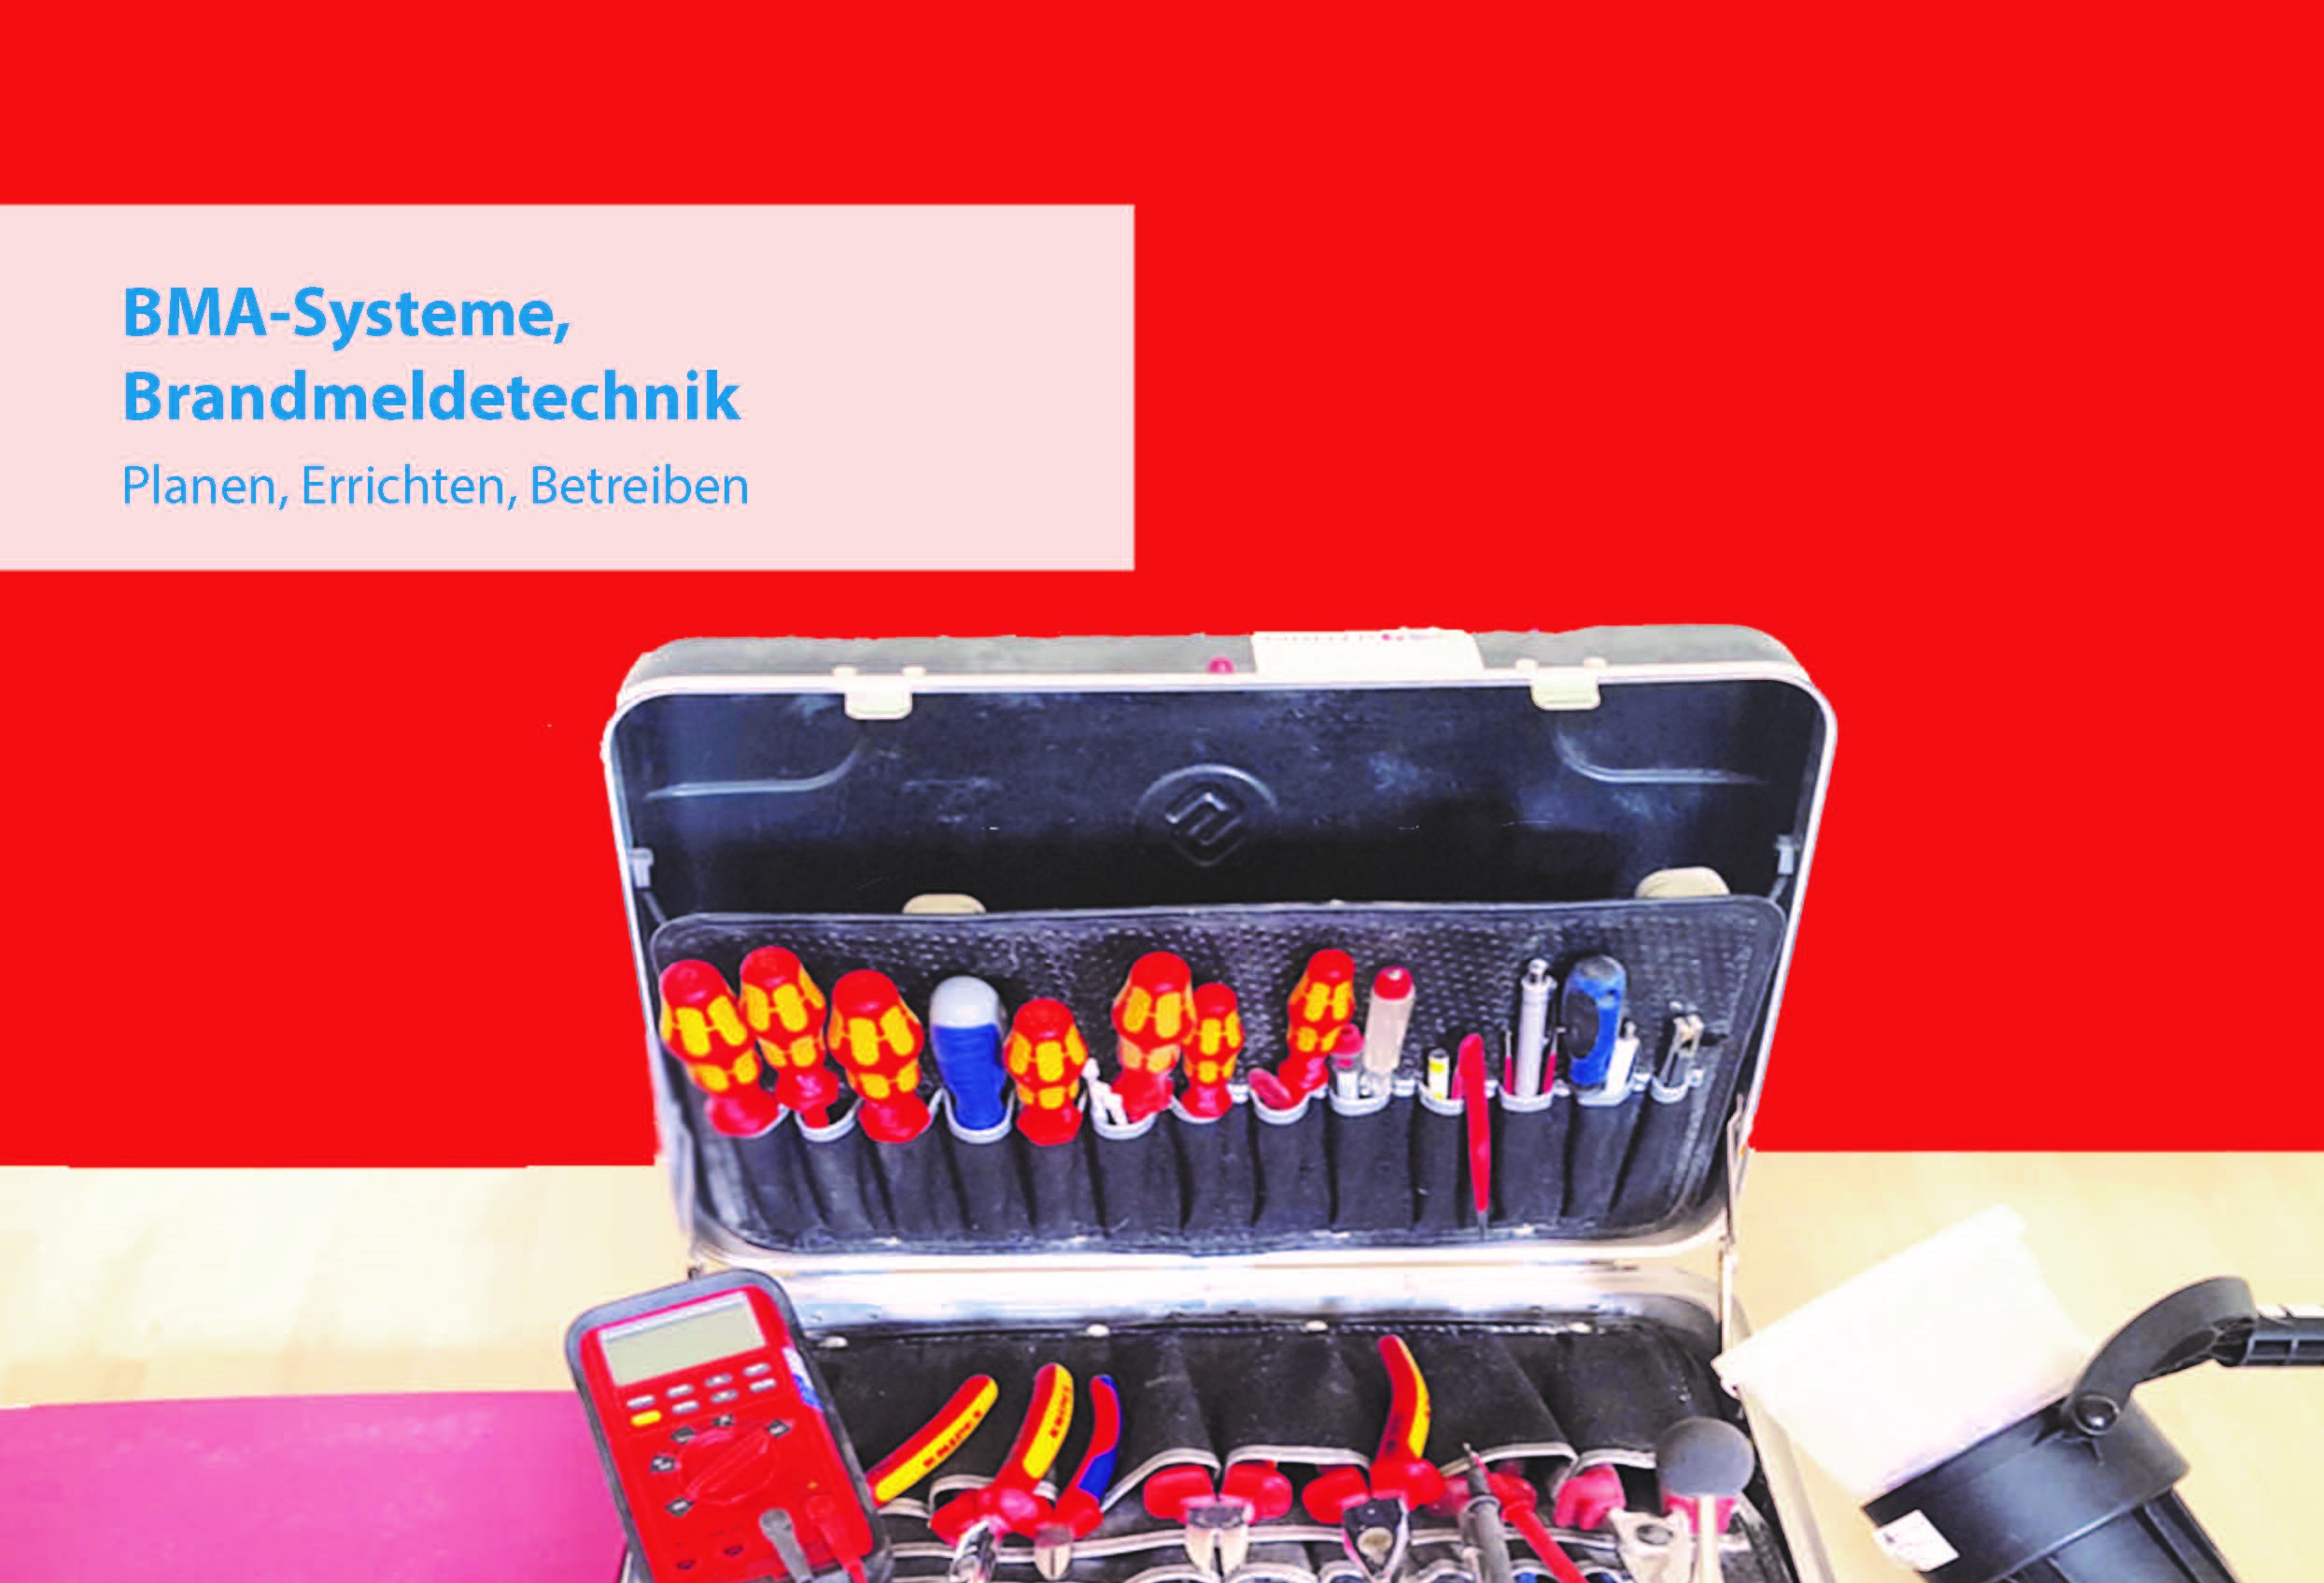 Schulung Workshop BMA-Systeme, Brandmeldetechnik